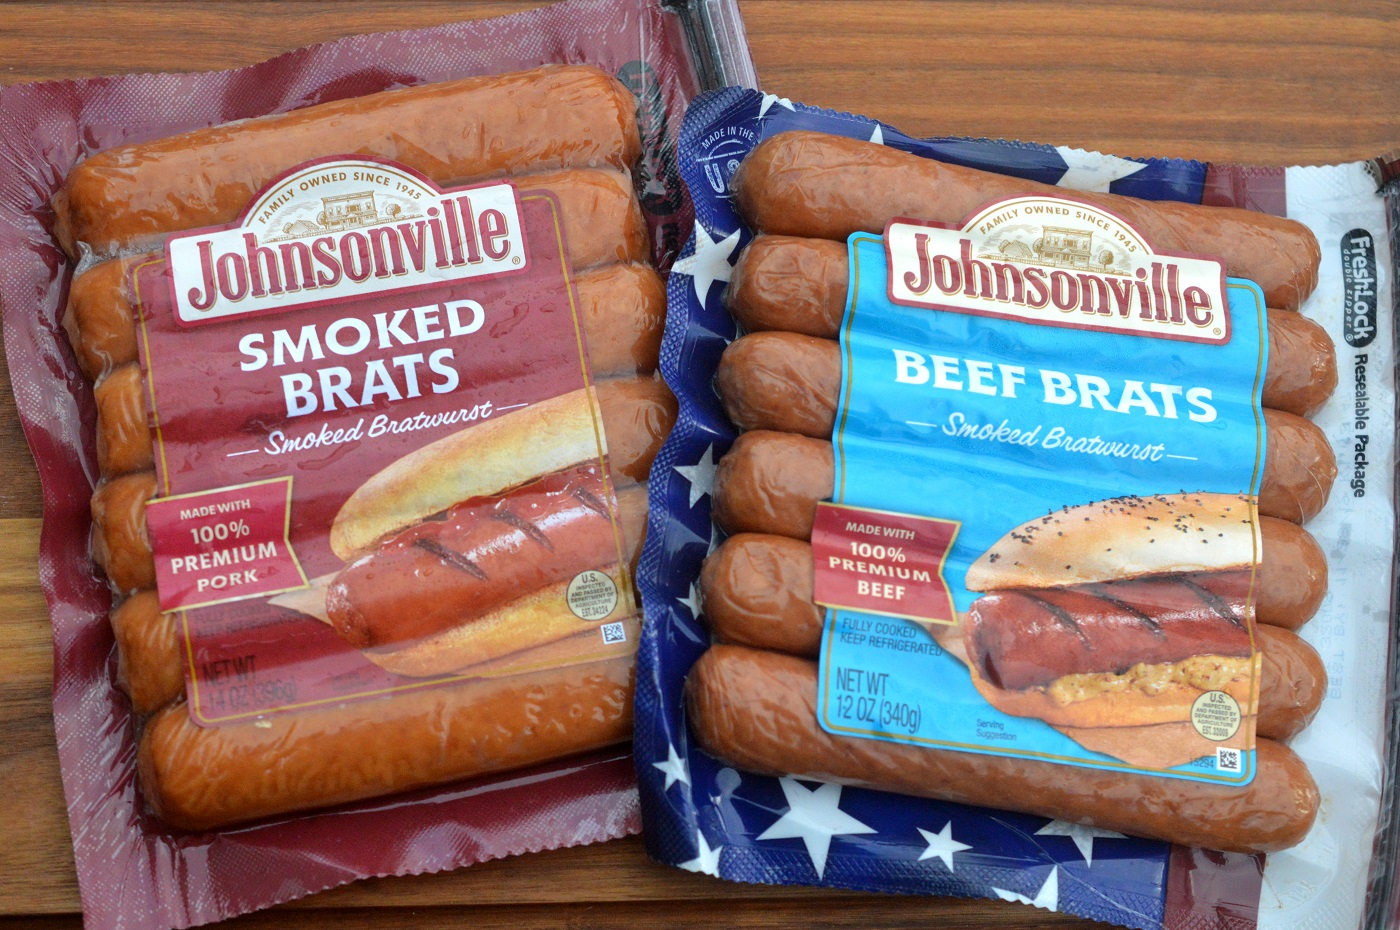 Johnsonville Smoked Brats